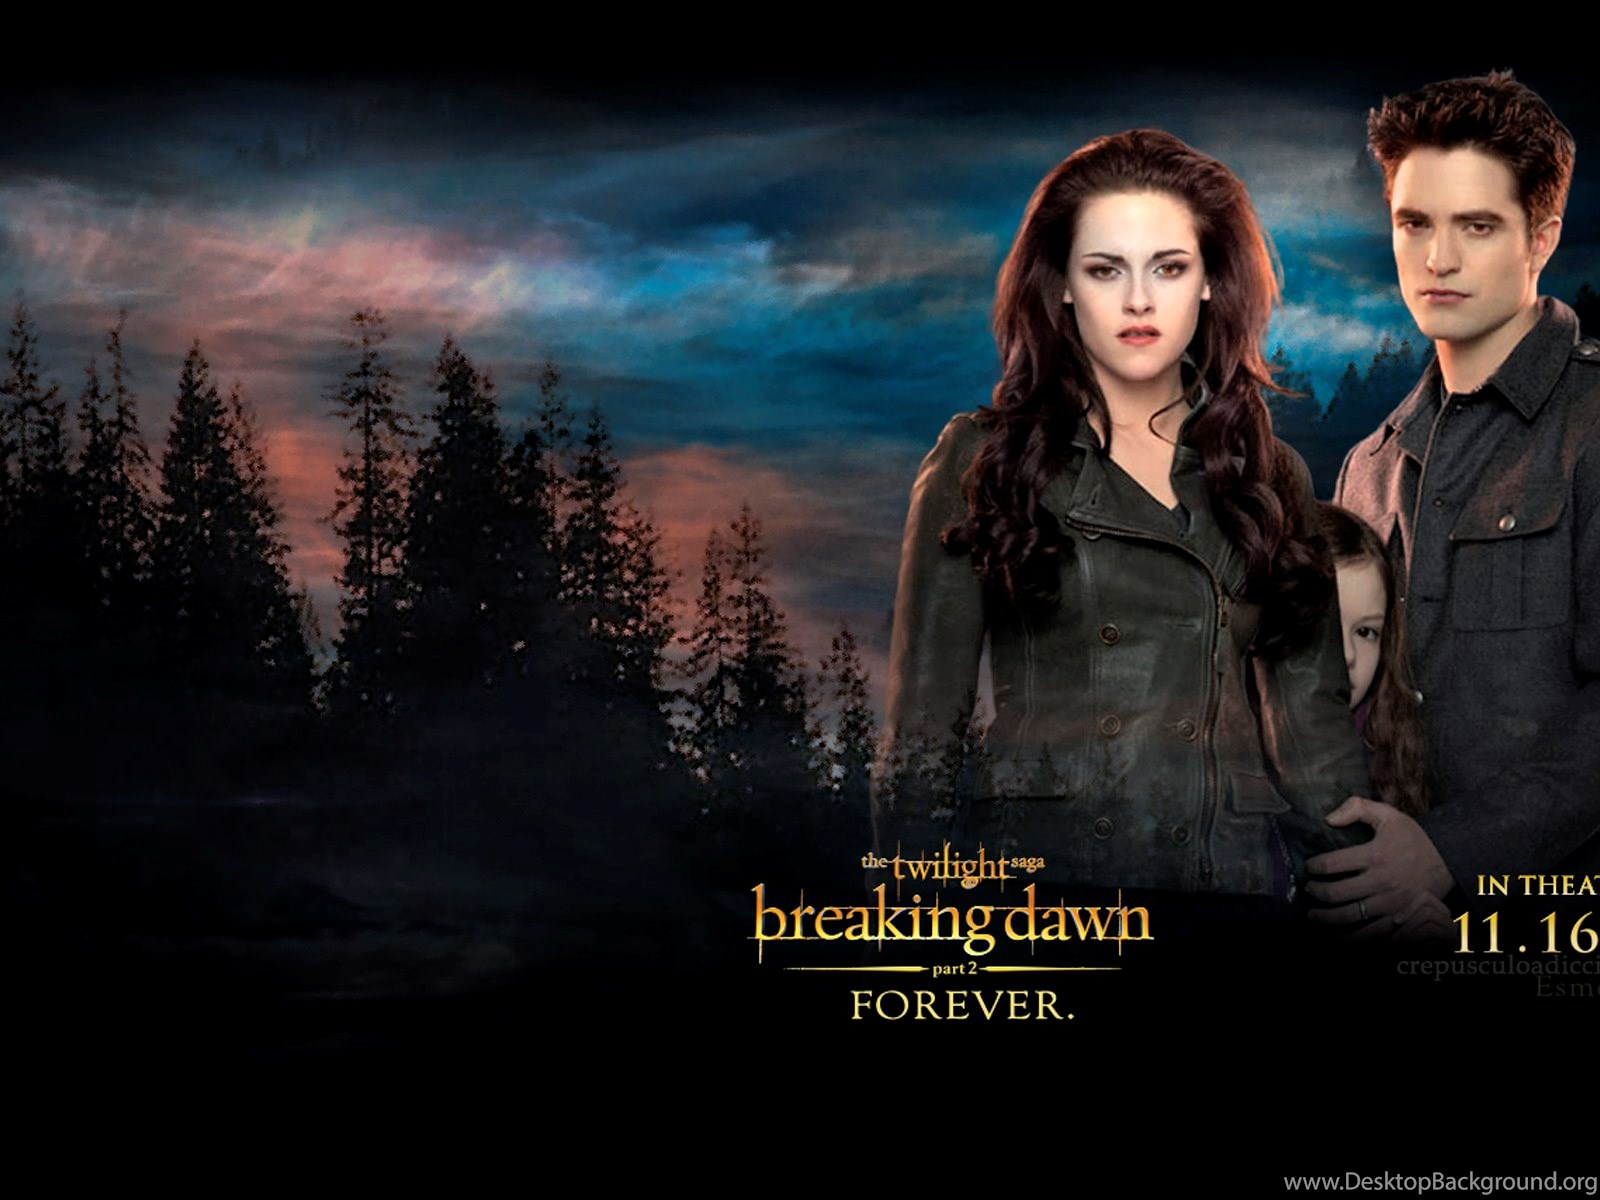 Breaking Dawn Part 2 Wallpapers Twilight Series Wallpapers